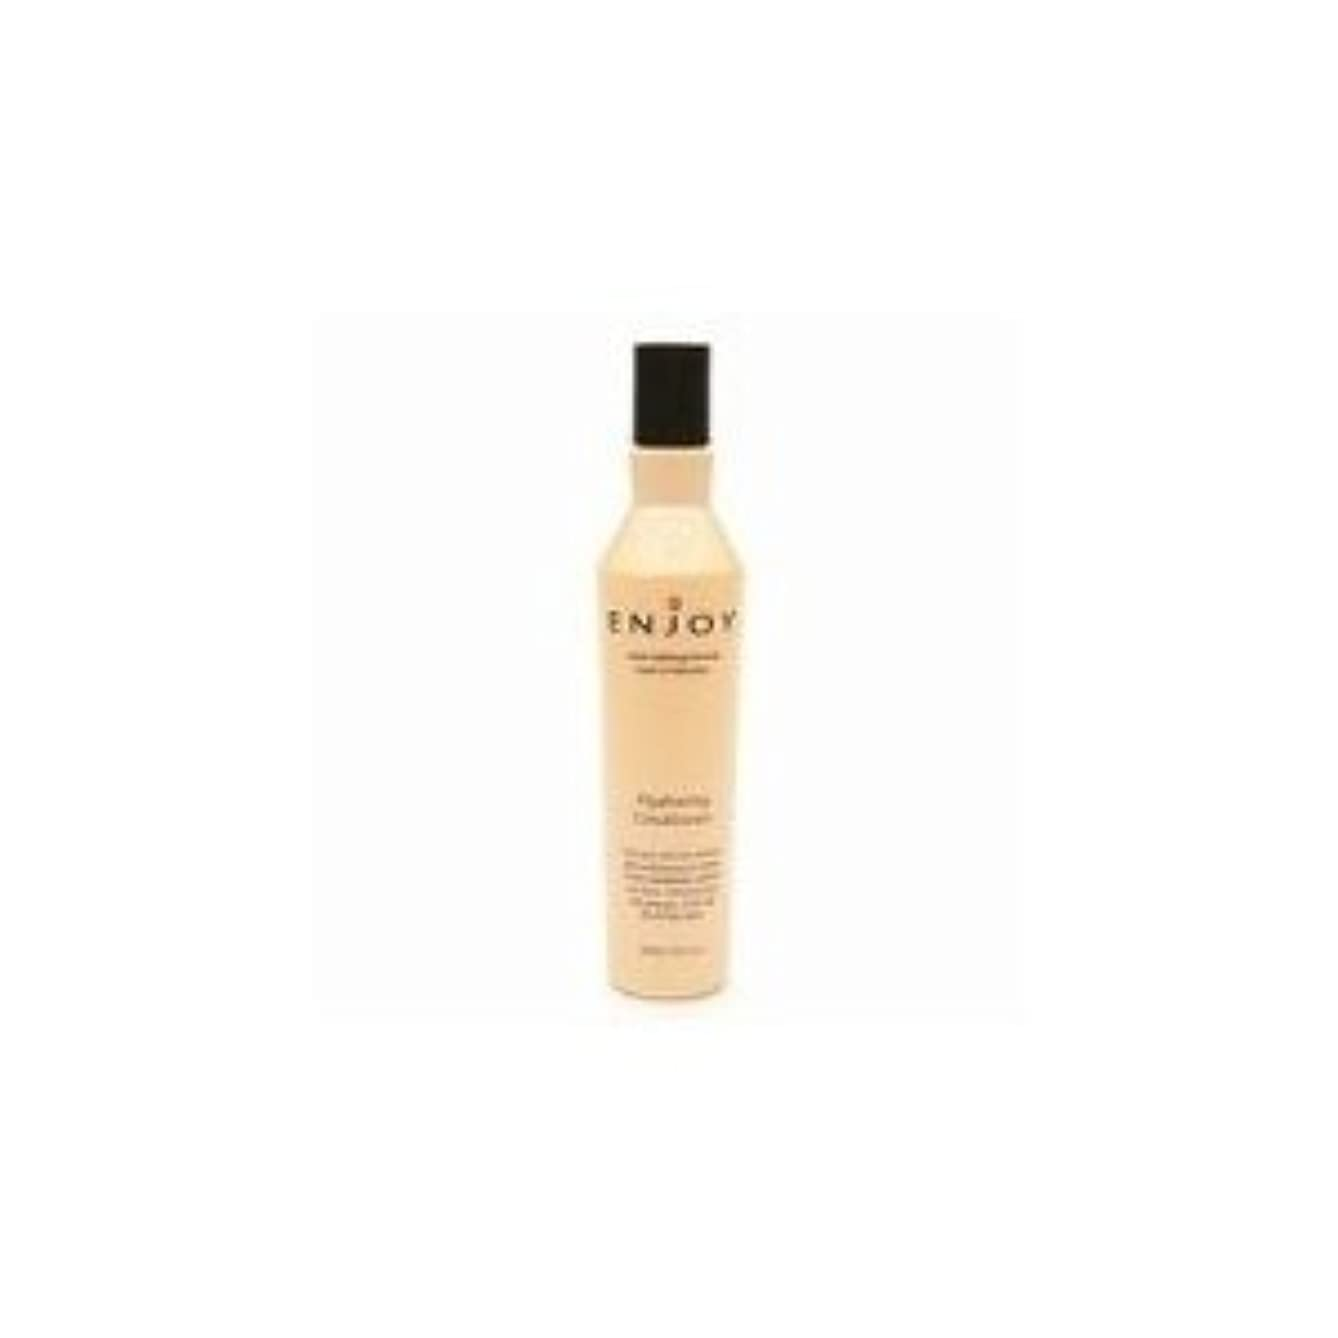 Enjoy Hydrating Conditioner - 2 oz Travel by EN Joy